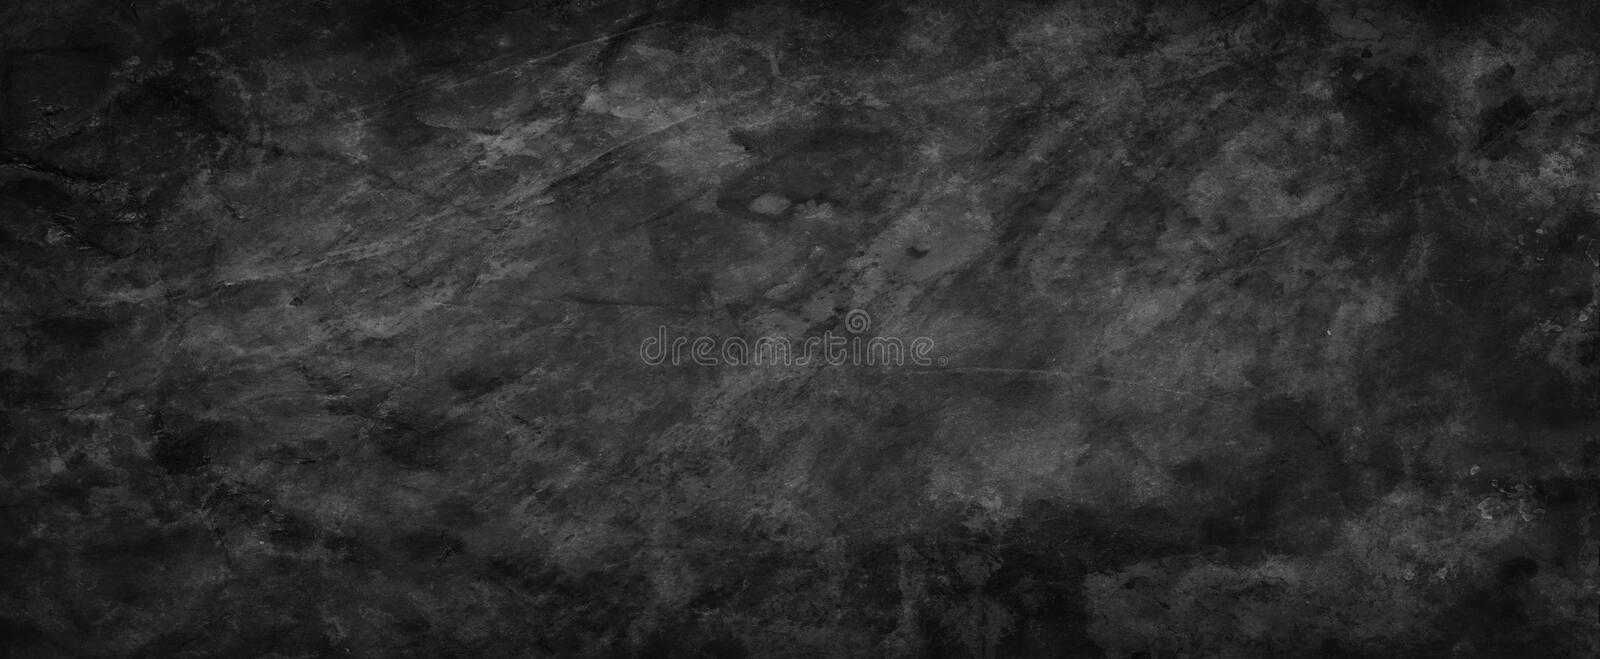 Charcoal Gray Paint >> Black Background Texture And Grunge Old Chalkboard